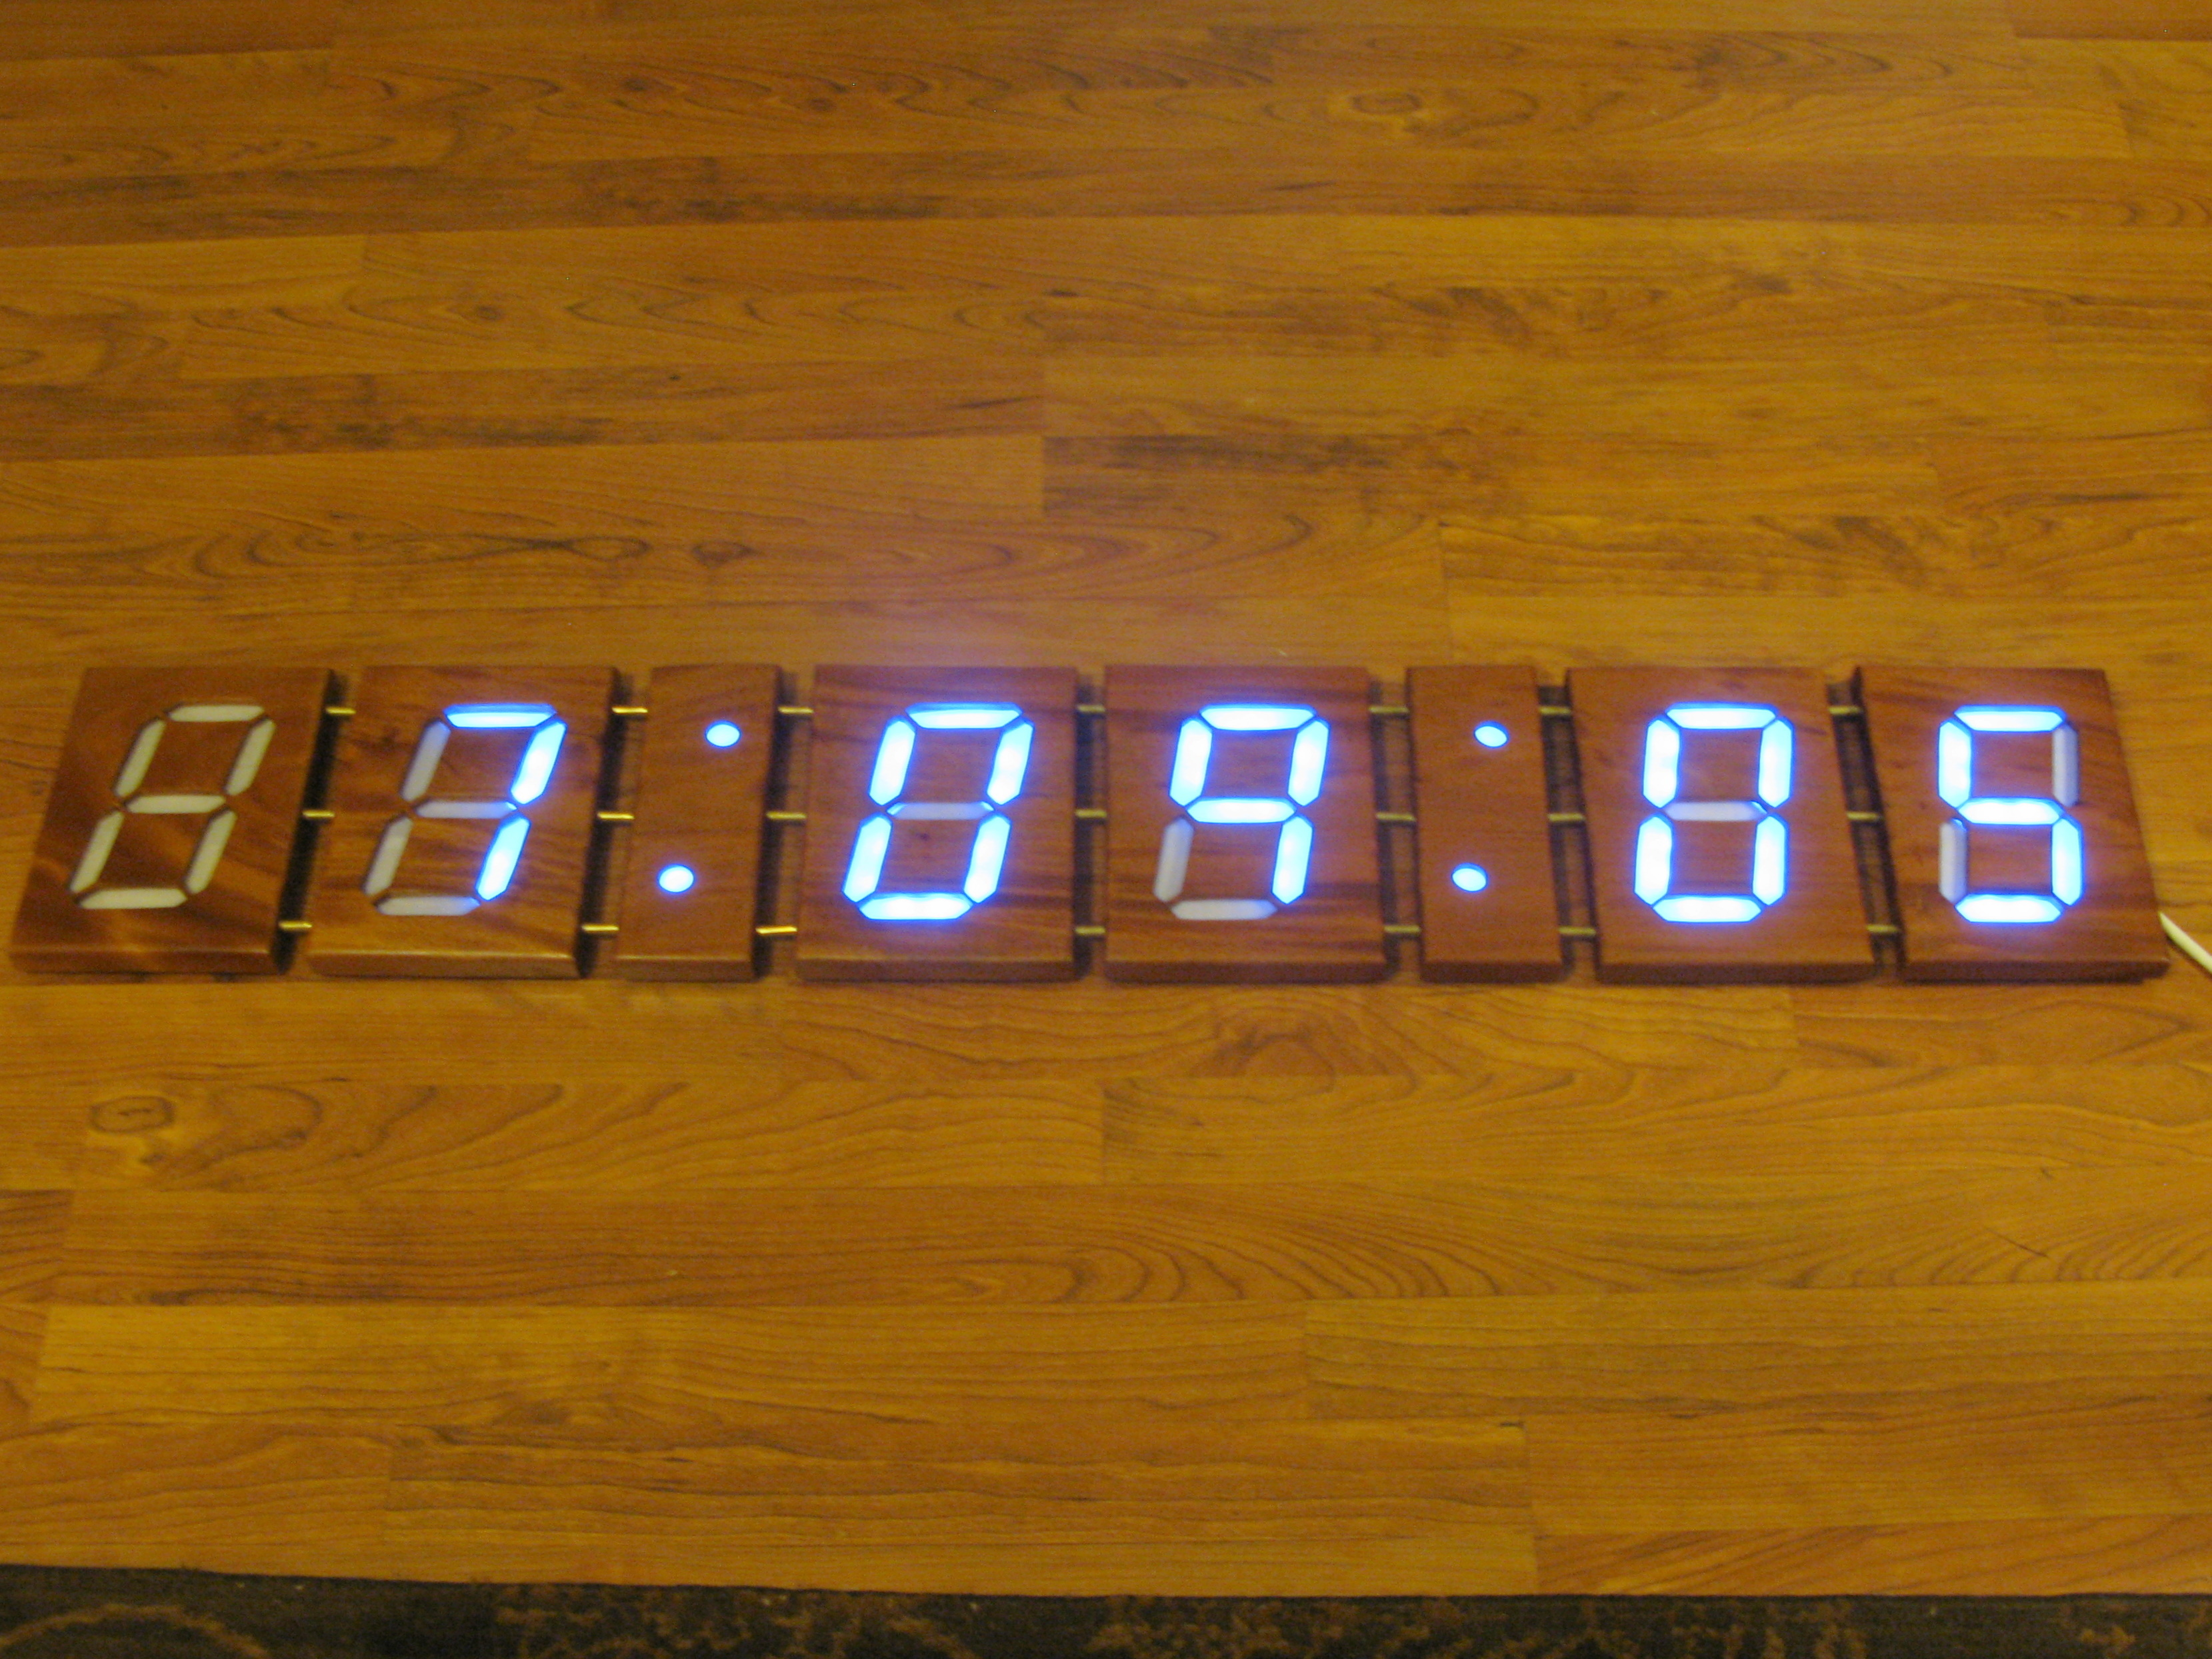 New Project: 4-Foot Wooden Digital Clock